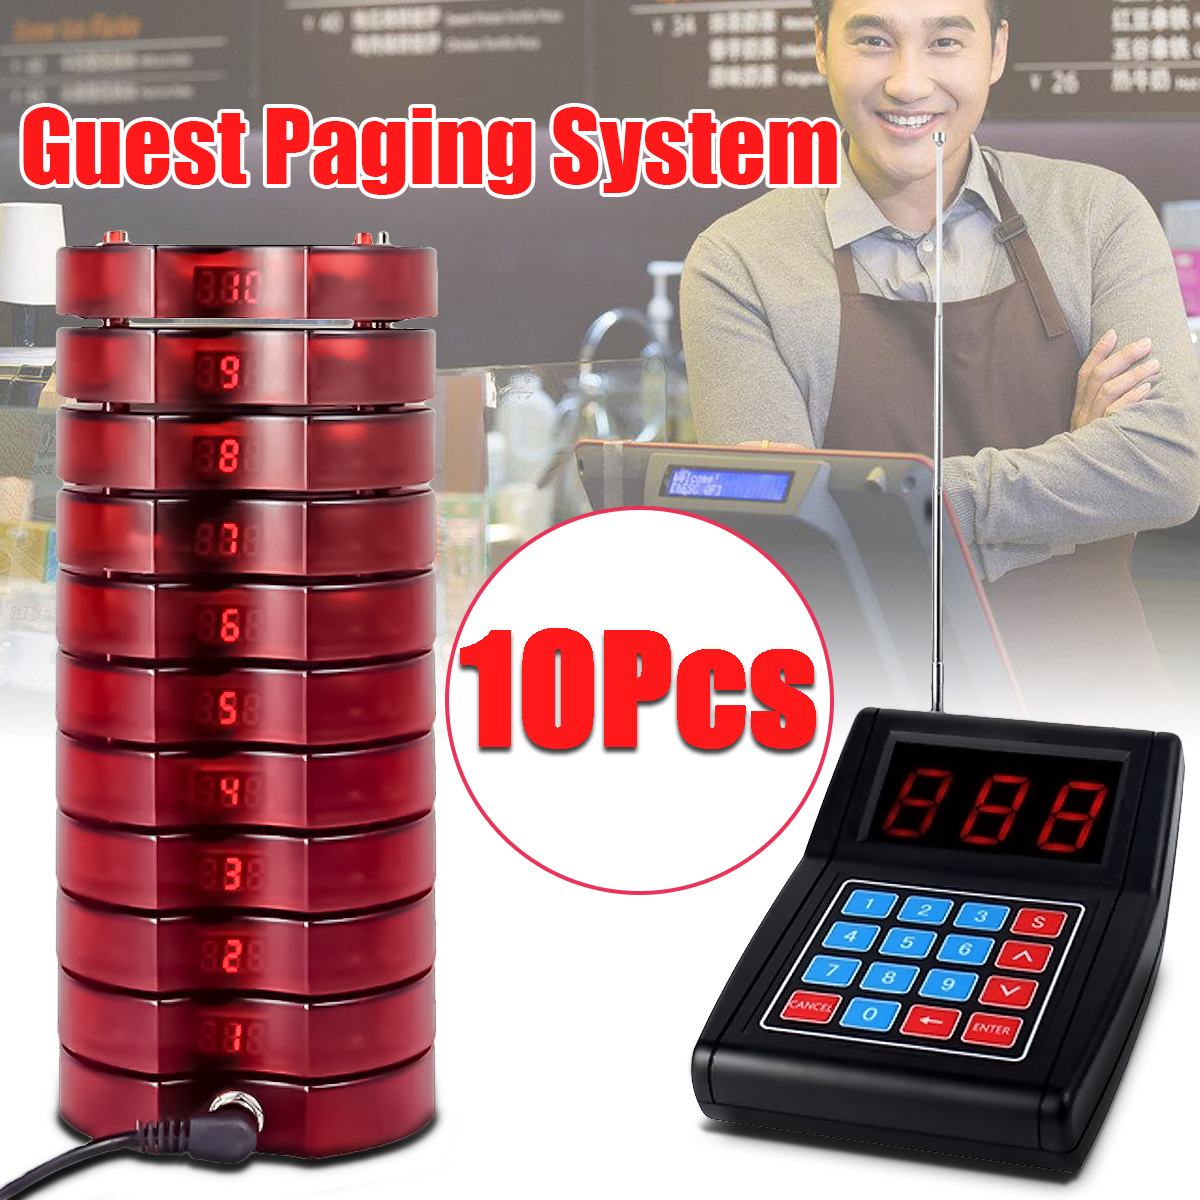 999 Channel Restaurant Pager Wireless Paging Queuing Calling System Transmitter with 10 Coaster Pagers Restaurant Equipments tivdio wireless restaurant pager guest paging queuing system 1 transmitter 20 chargeable pagers restaurants equipments f9401a